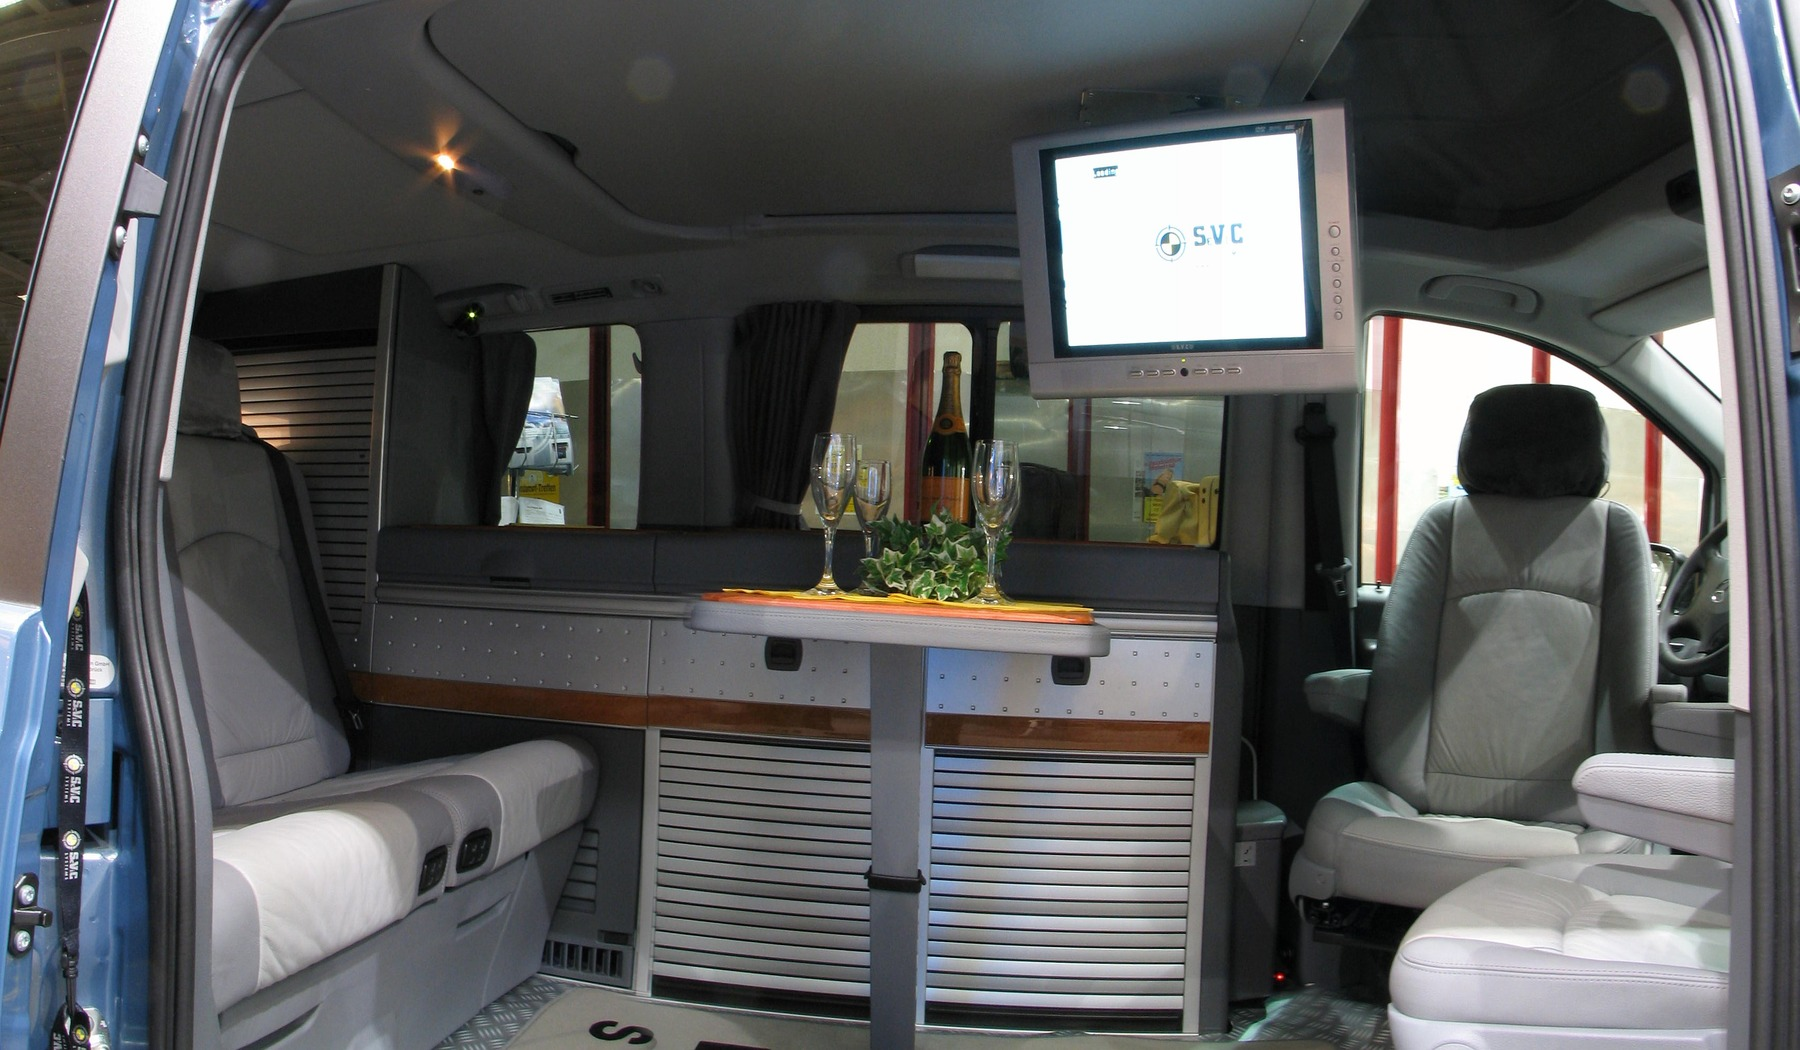 Tft With Dvd Player For Top Mounting In The Camper